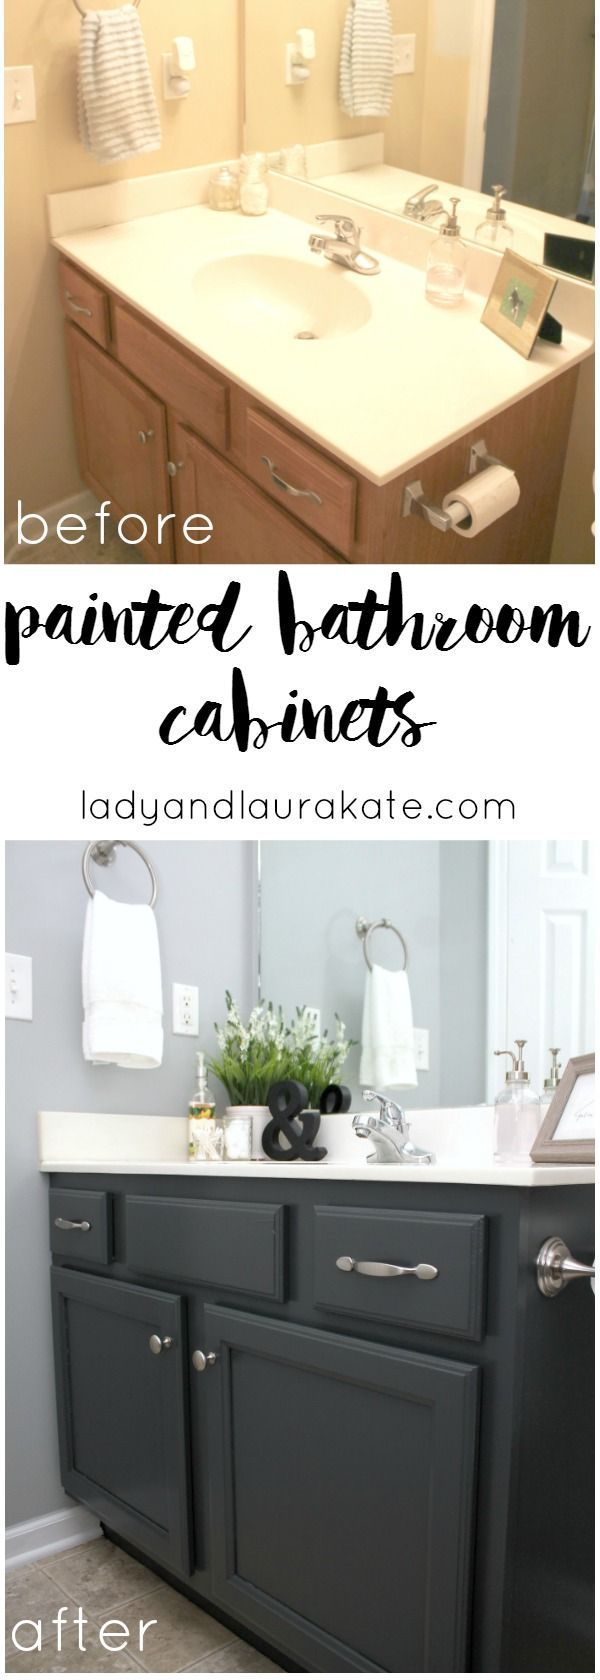 Painted Bathroom Cabinets (Diy Bathroom Remodel)